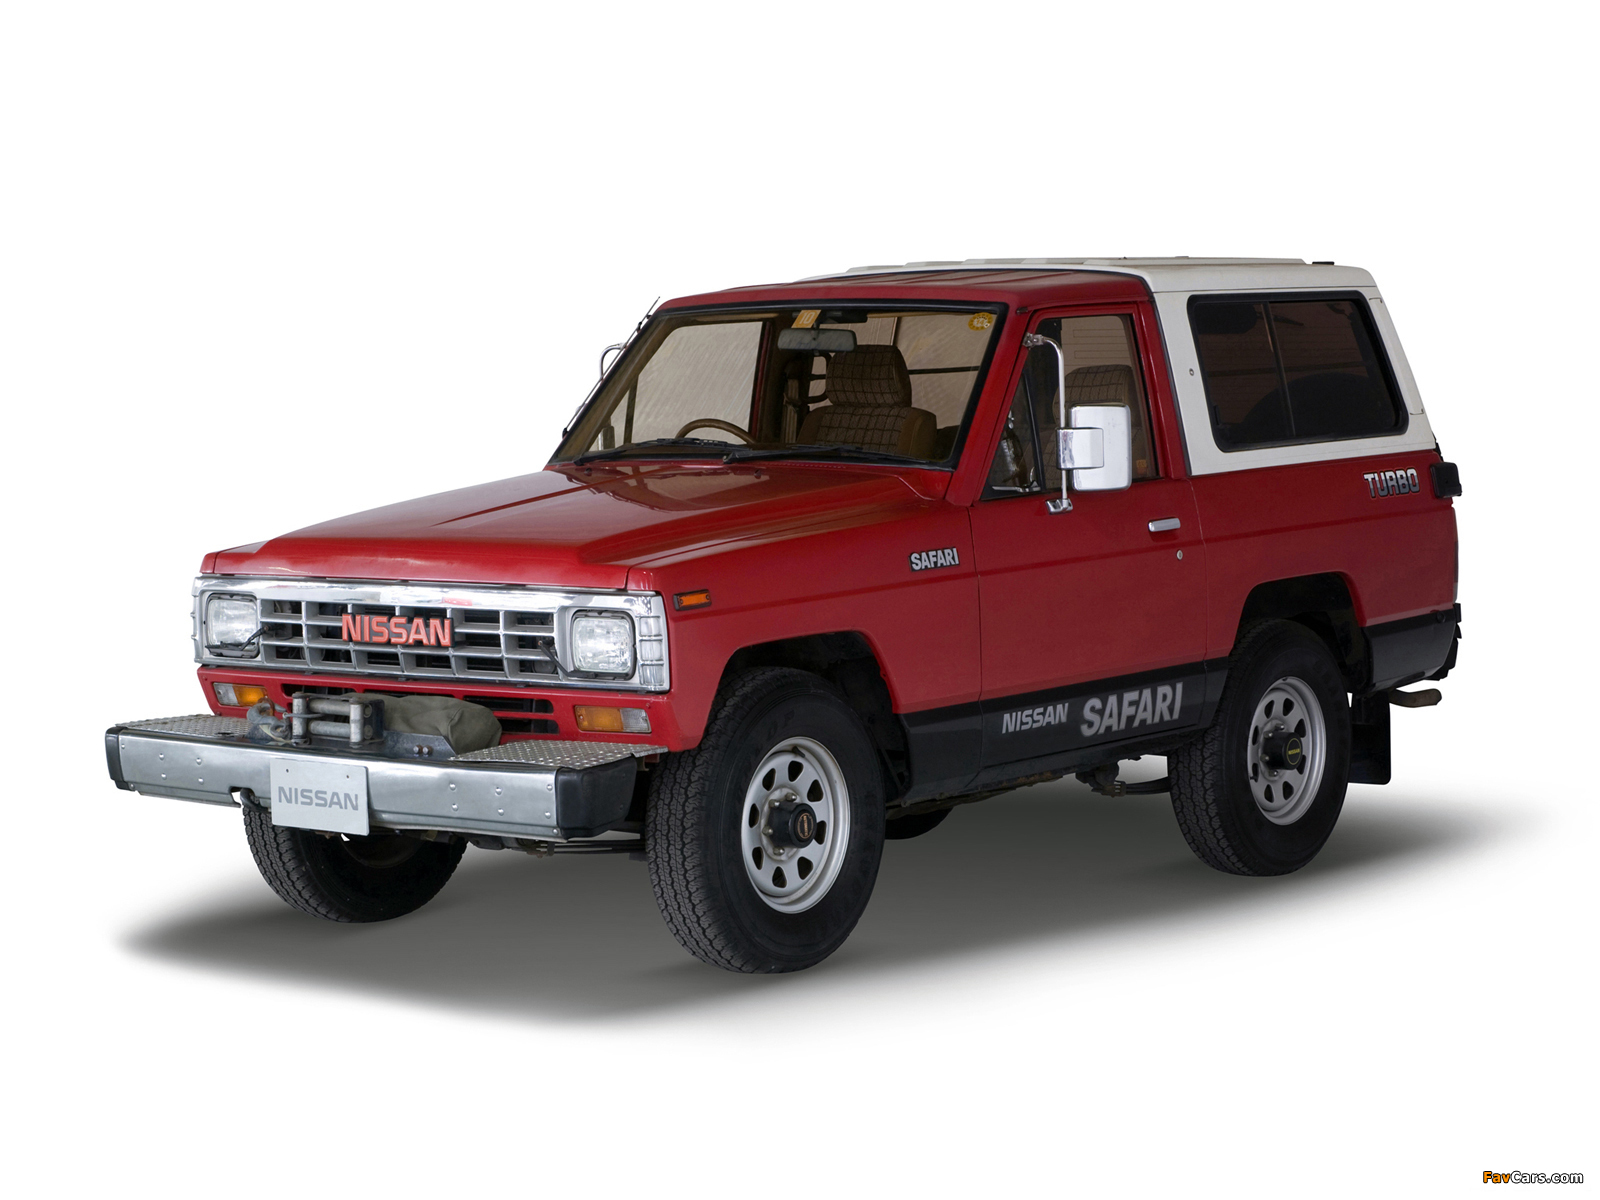 ... of Nissan Safari in Dallas–Fort Worth » Selling Cars in Your City